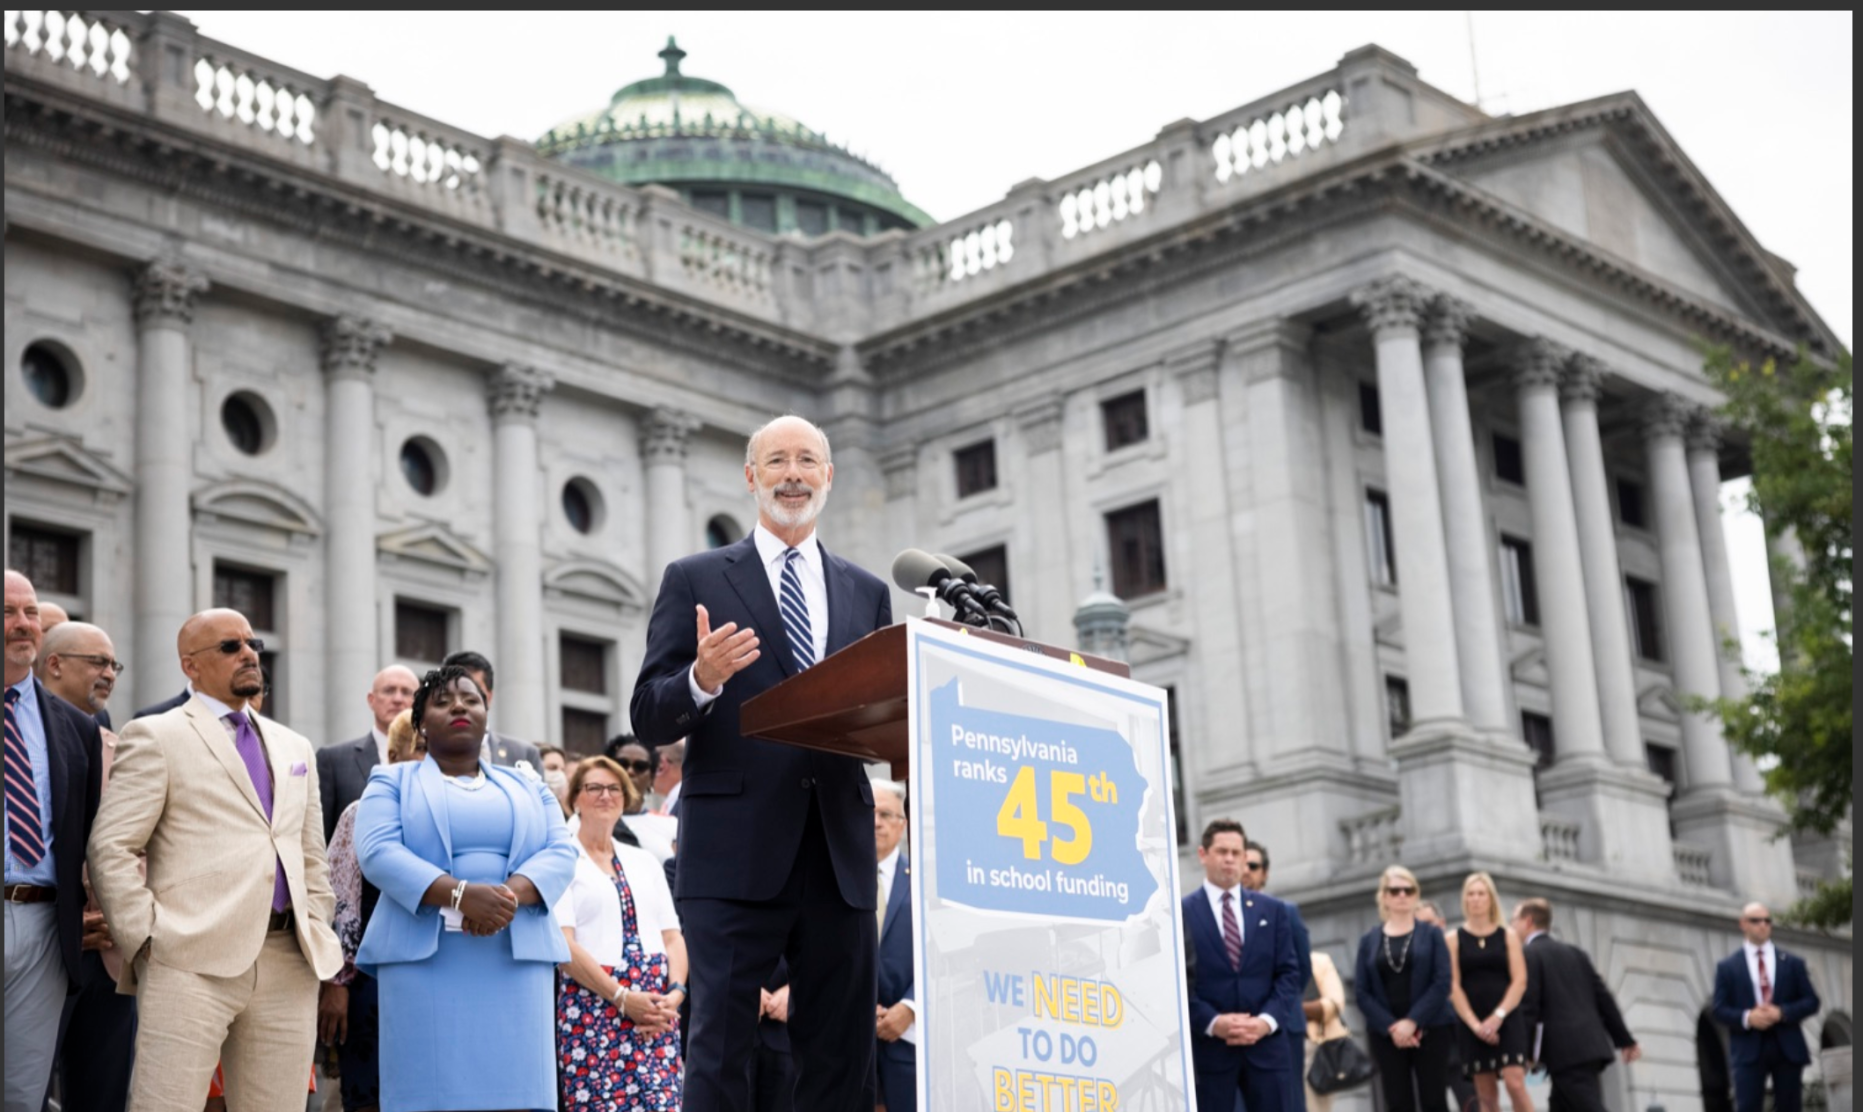 Democrats in Pennsylvania see 'unprecedented' solution to education funding woes